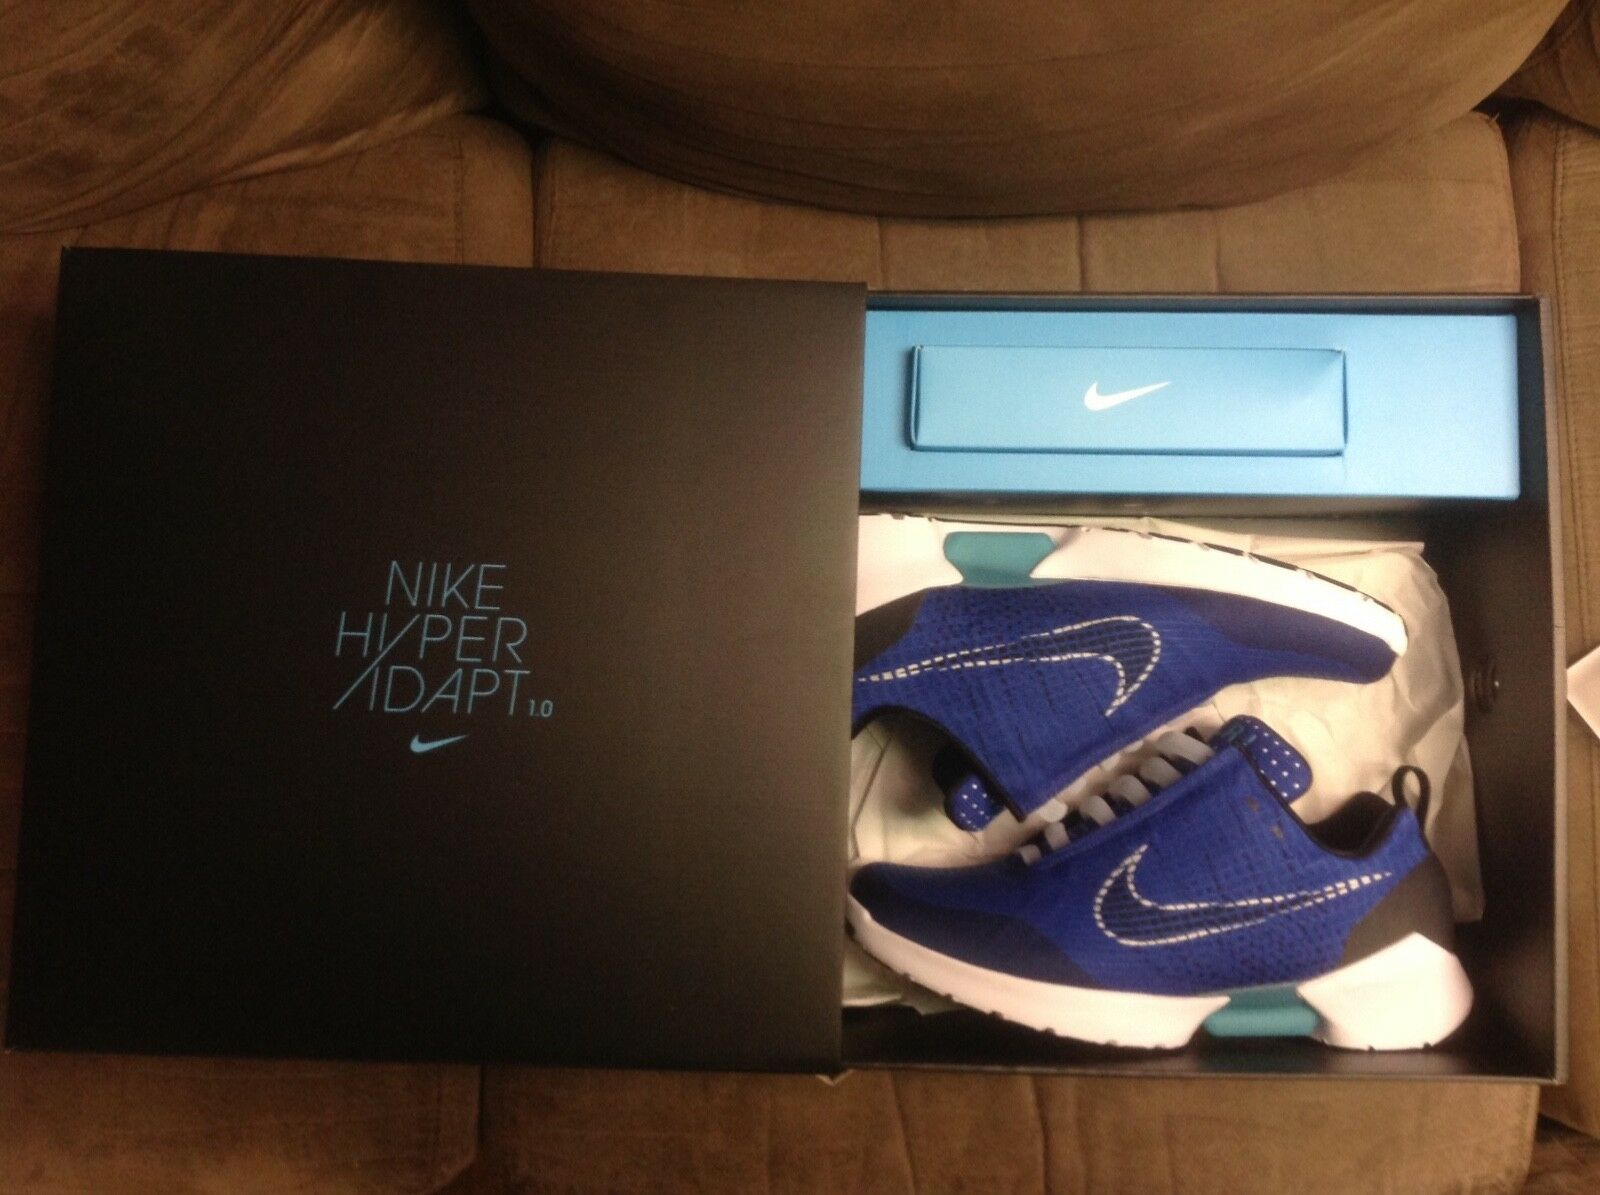 the latest 84ff2 88234 ... 9e5200 Nike royal hyperadapt royal Nike tinker blau, new in box, ...